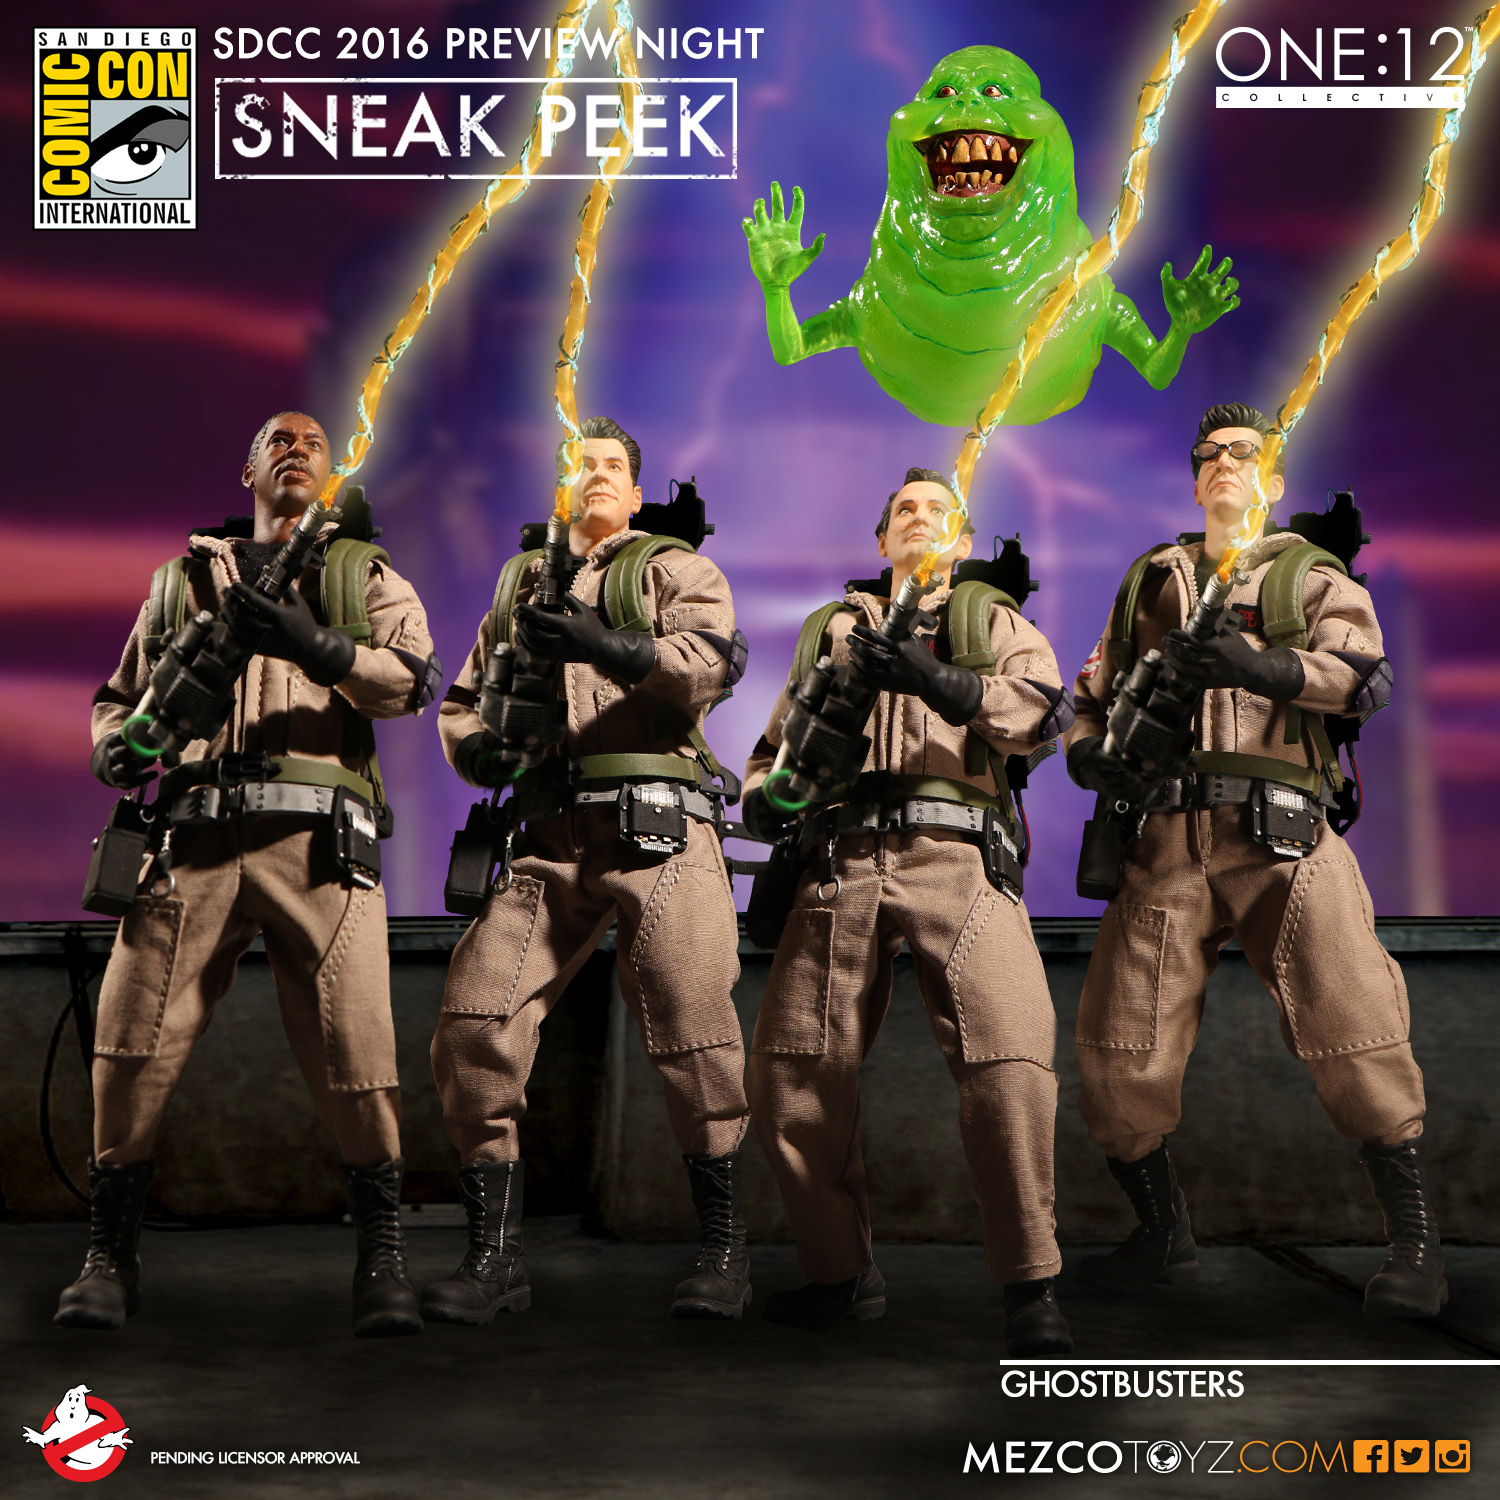 Mezco Toyz Ghostbusters One:12 Collective Figures